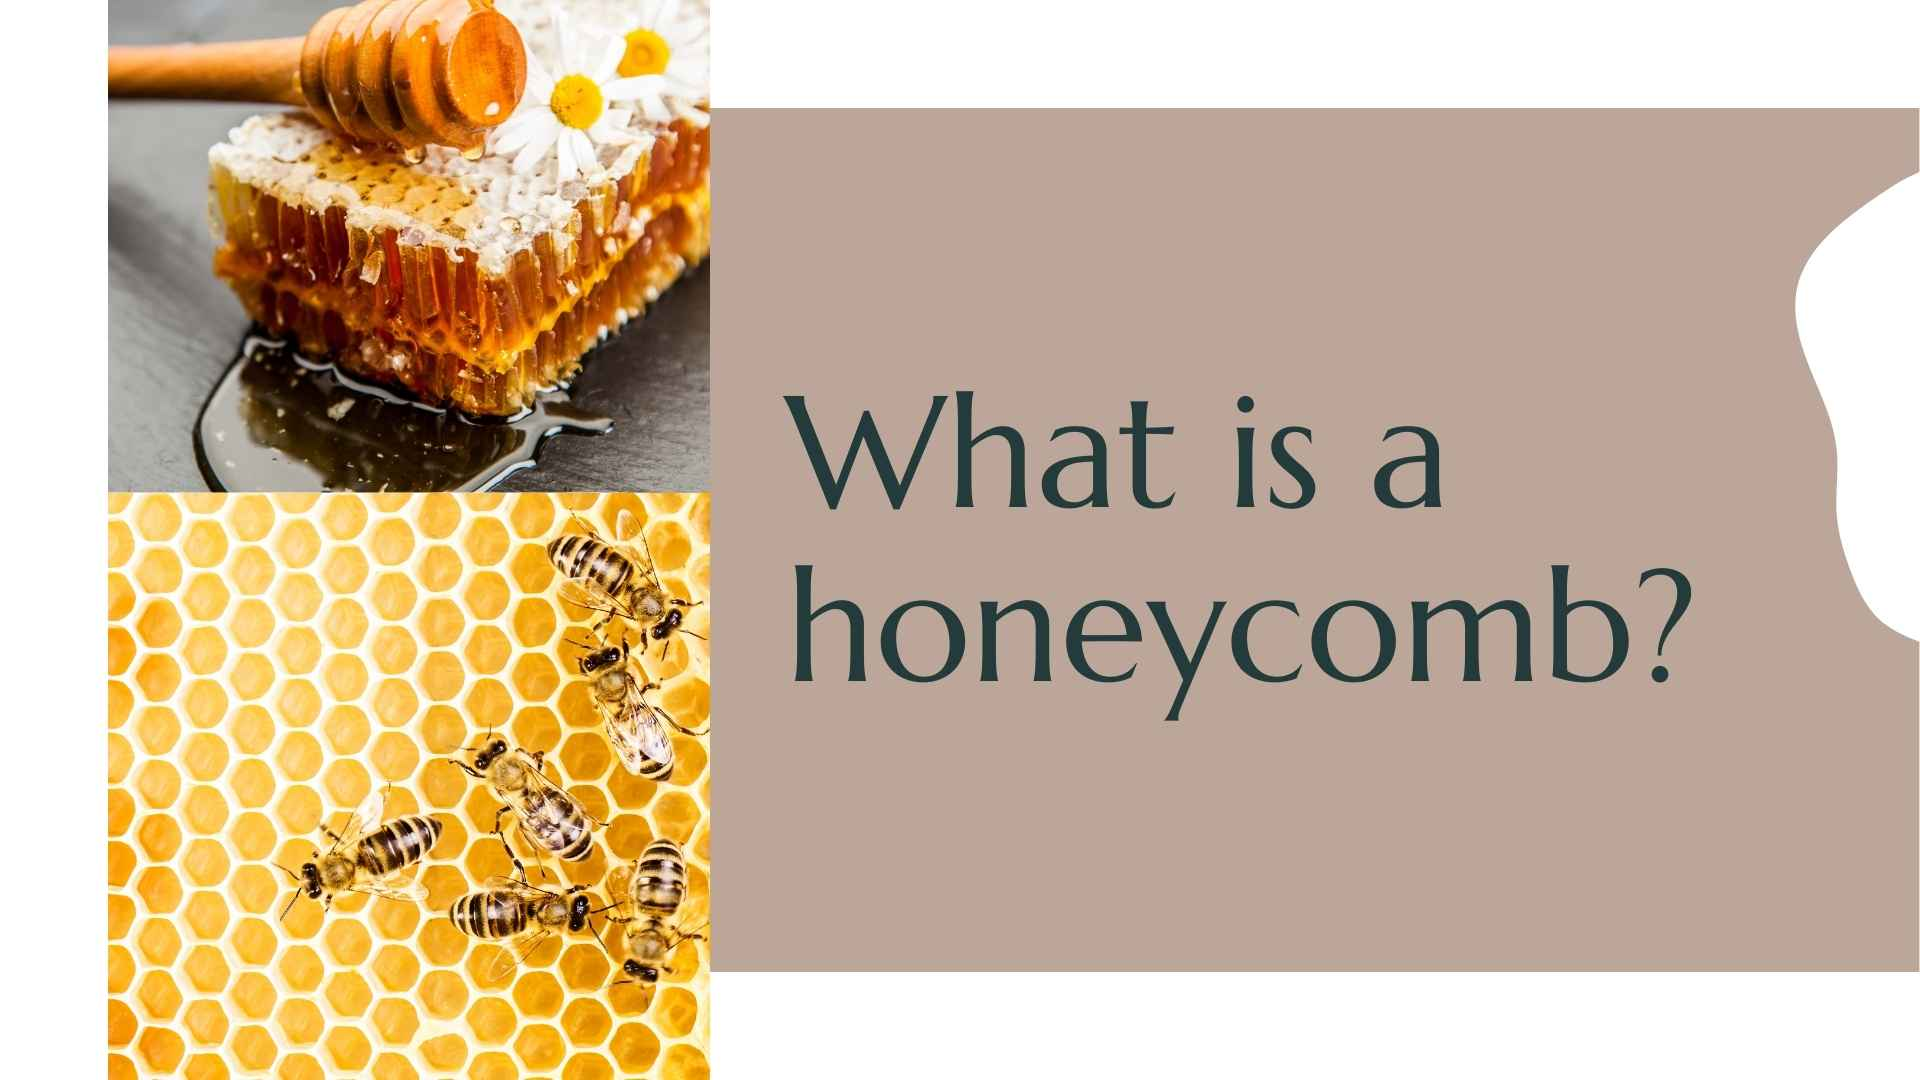 what is a honeycomb